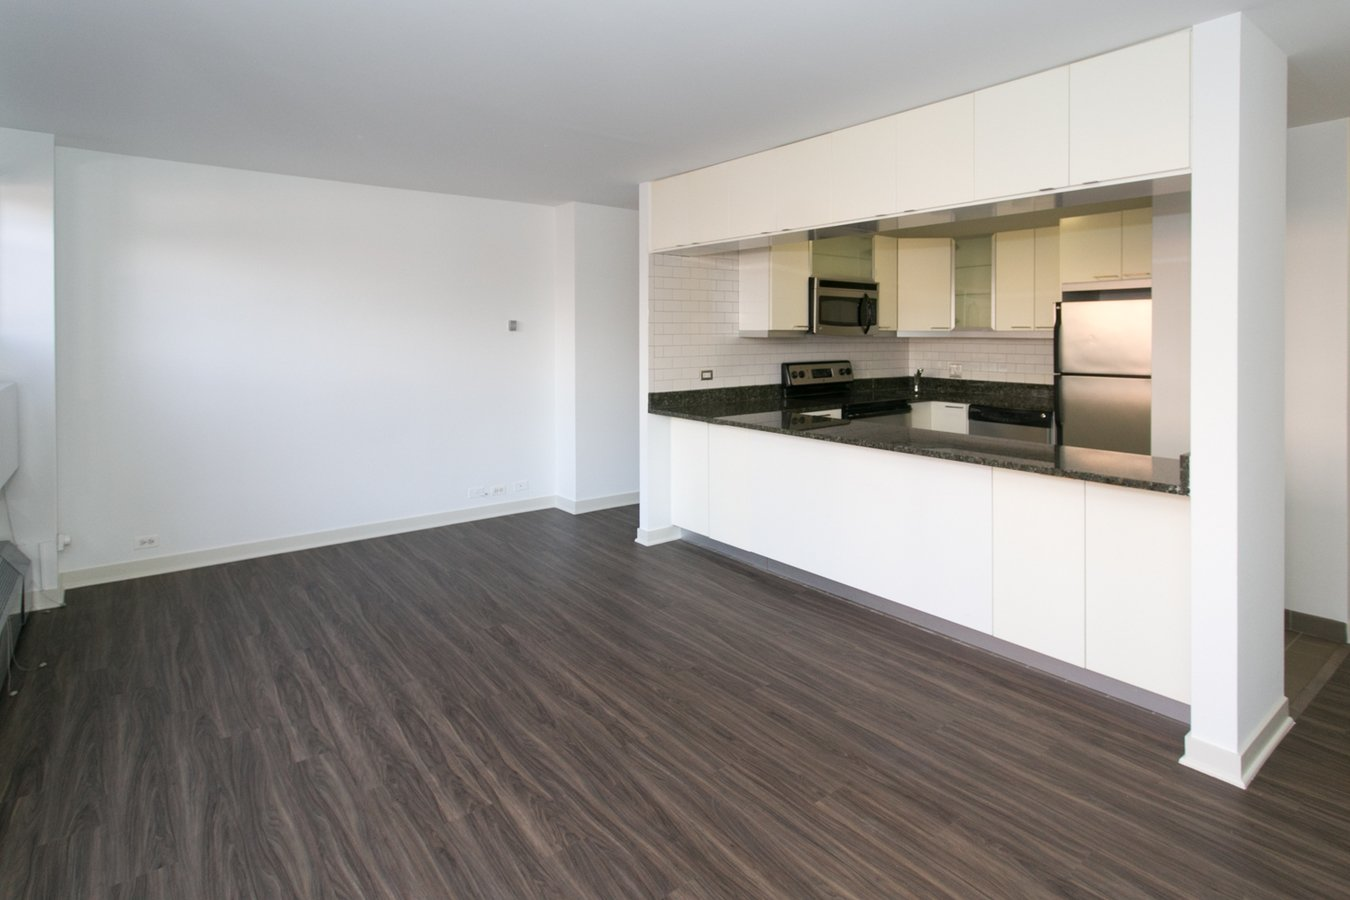 1 Bedroom 1 Bathroom Apartment for rent at Algonquin Apartments in Chicago, IL